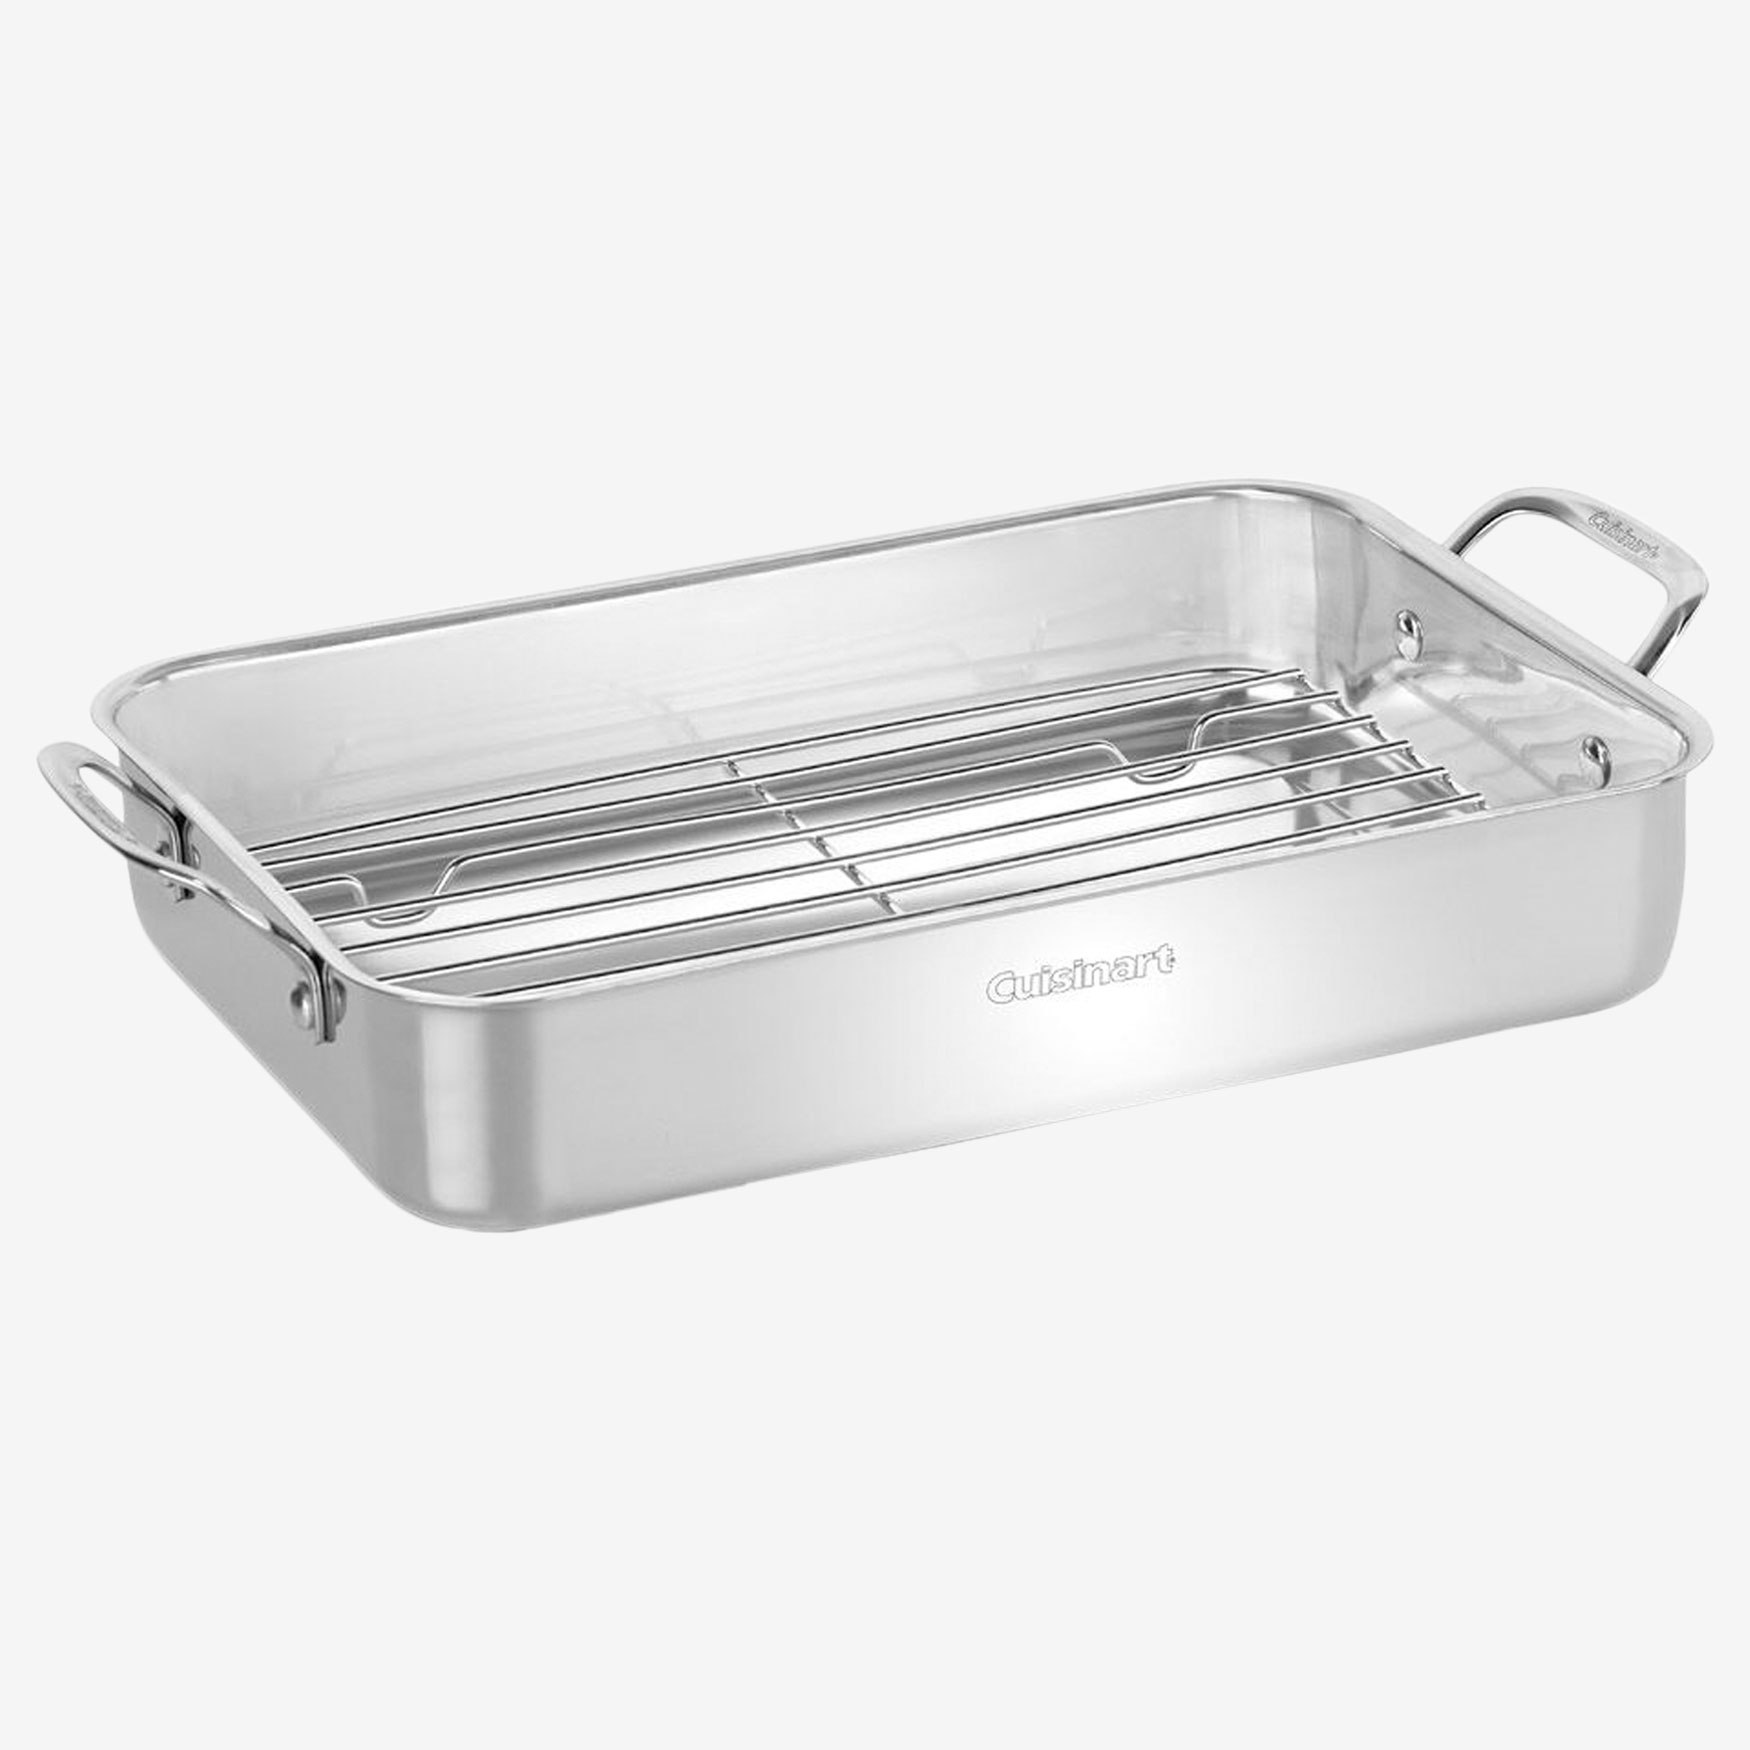 Cuisinart Lasagna Pan with Stainless Roasting Rack, STAINLESS STEEL